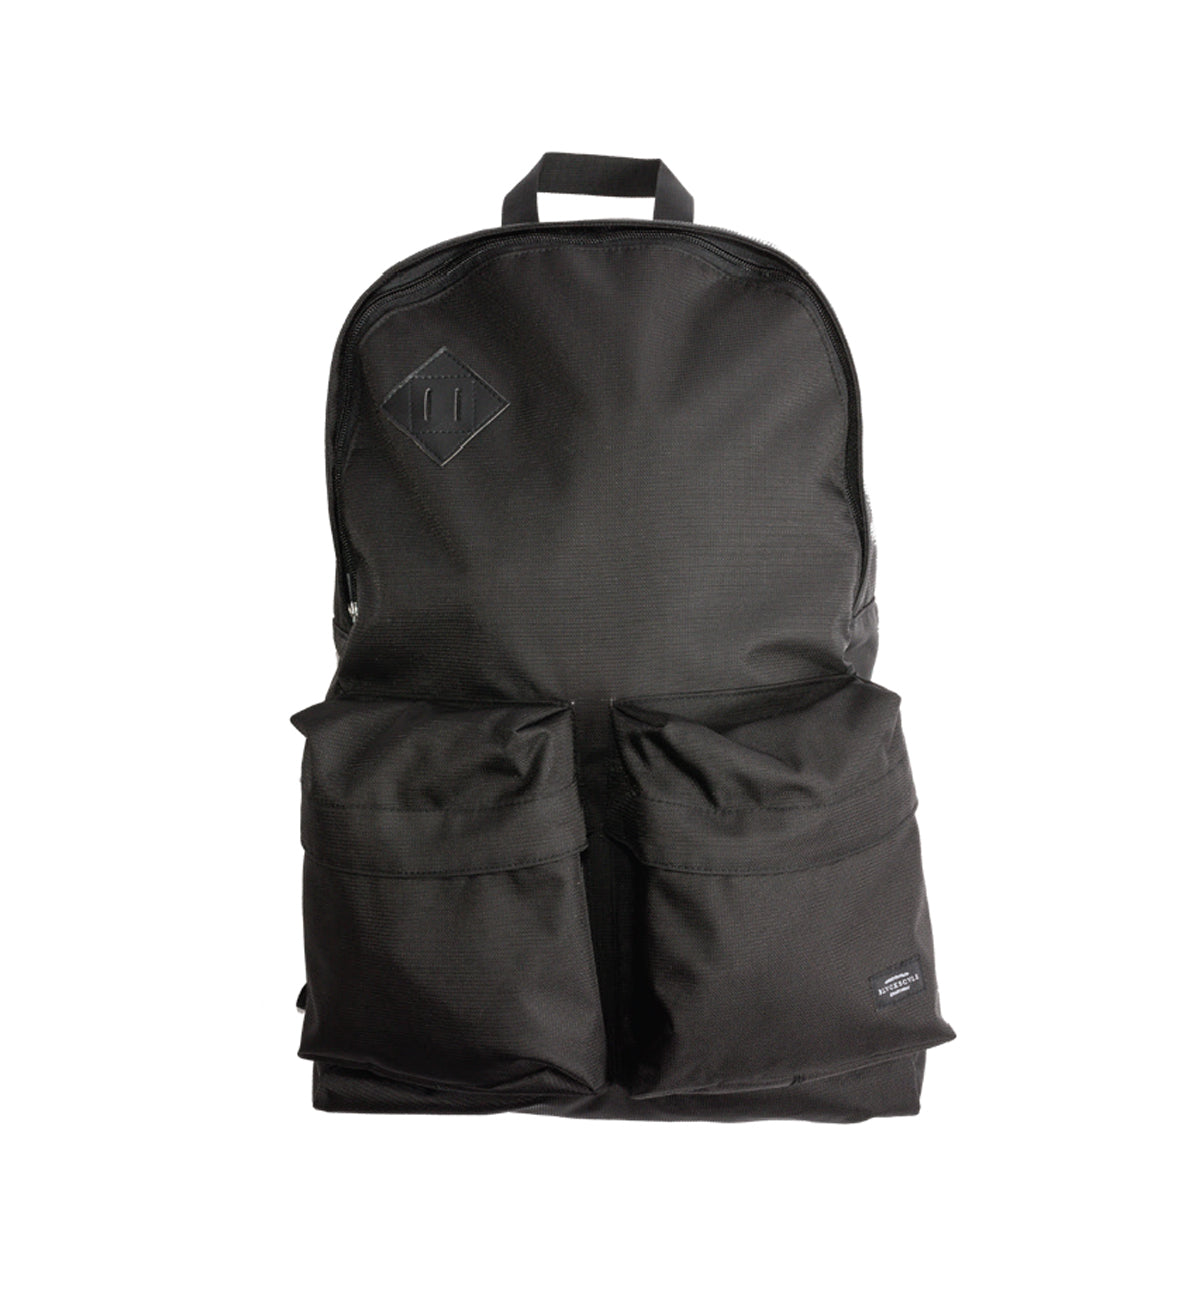 WORLD TRAVELER BACKPACK BLACK